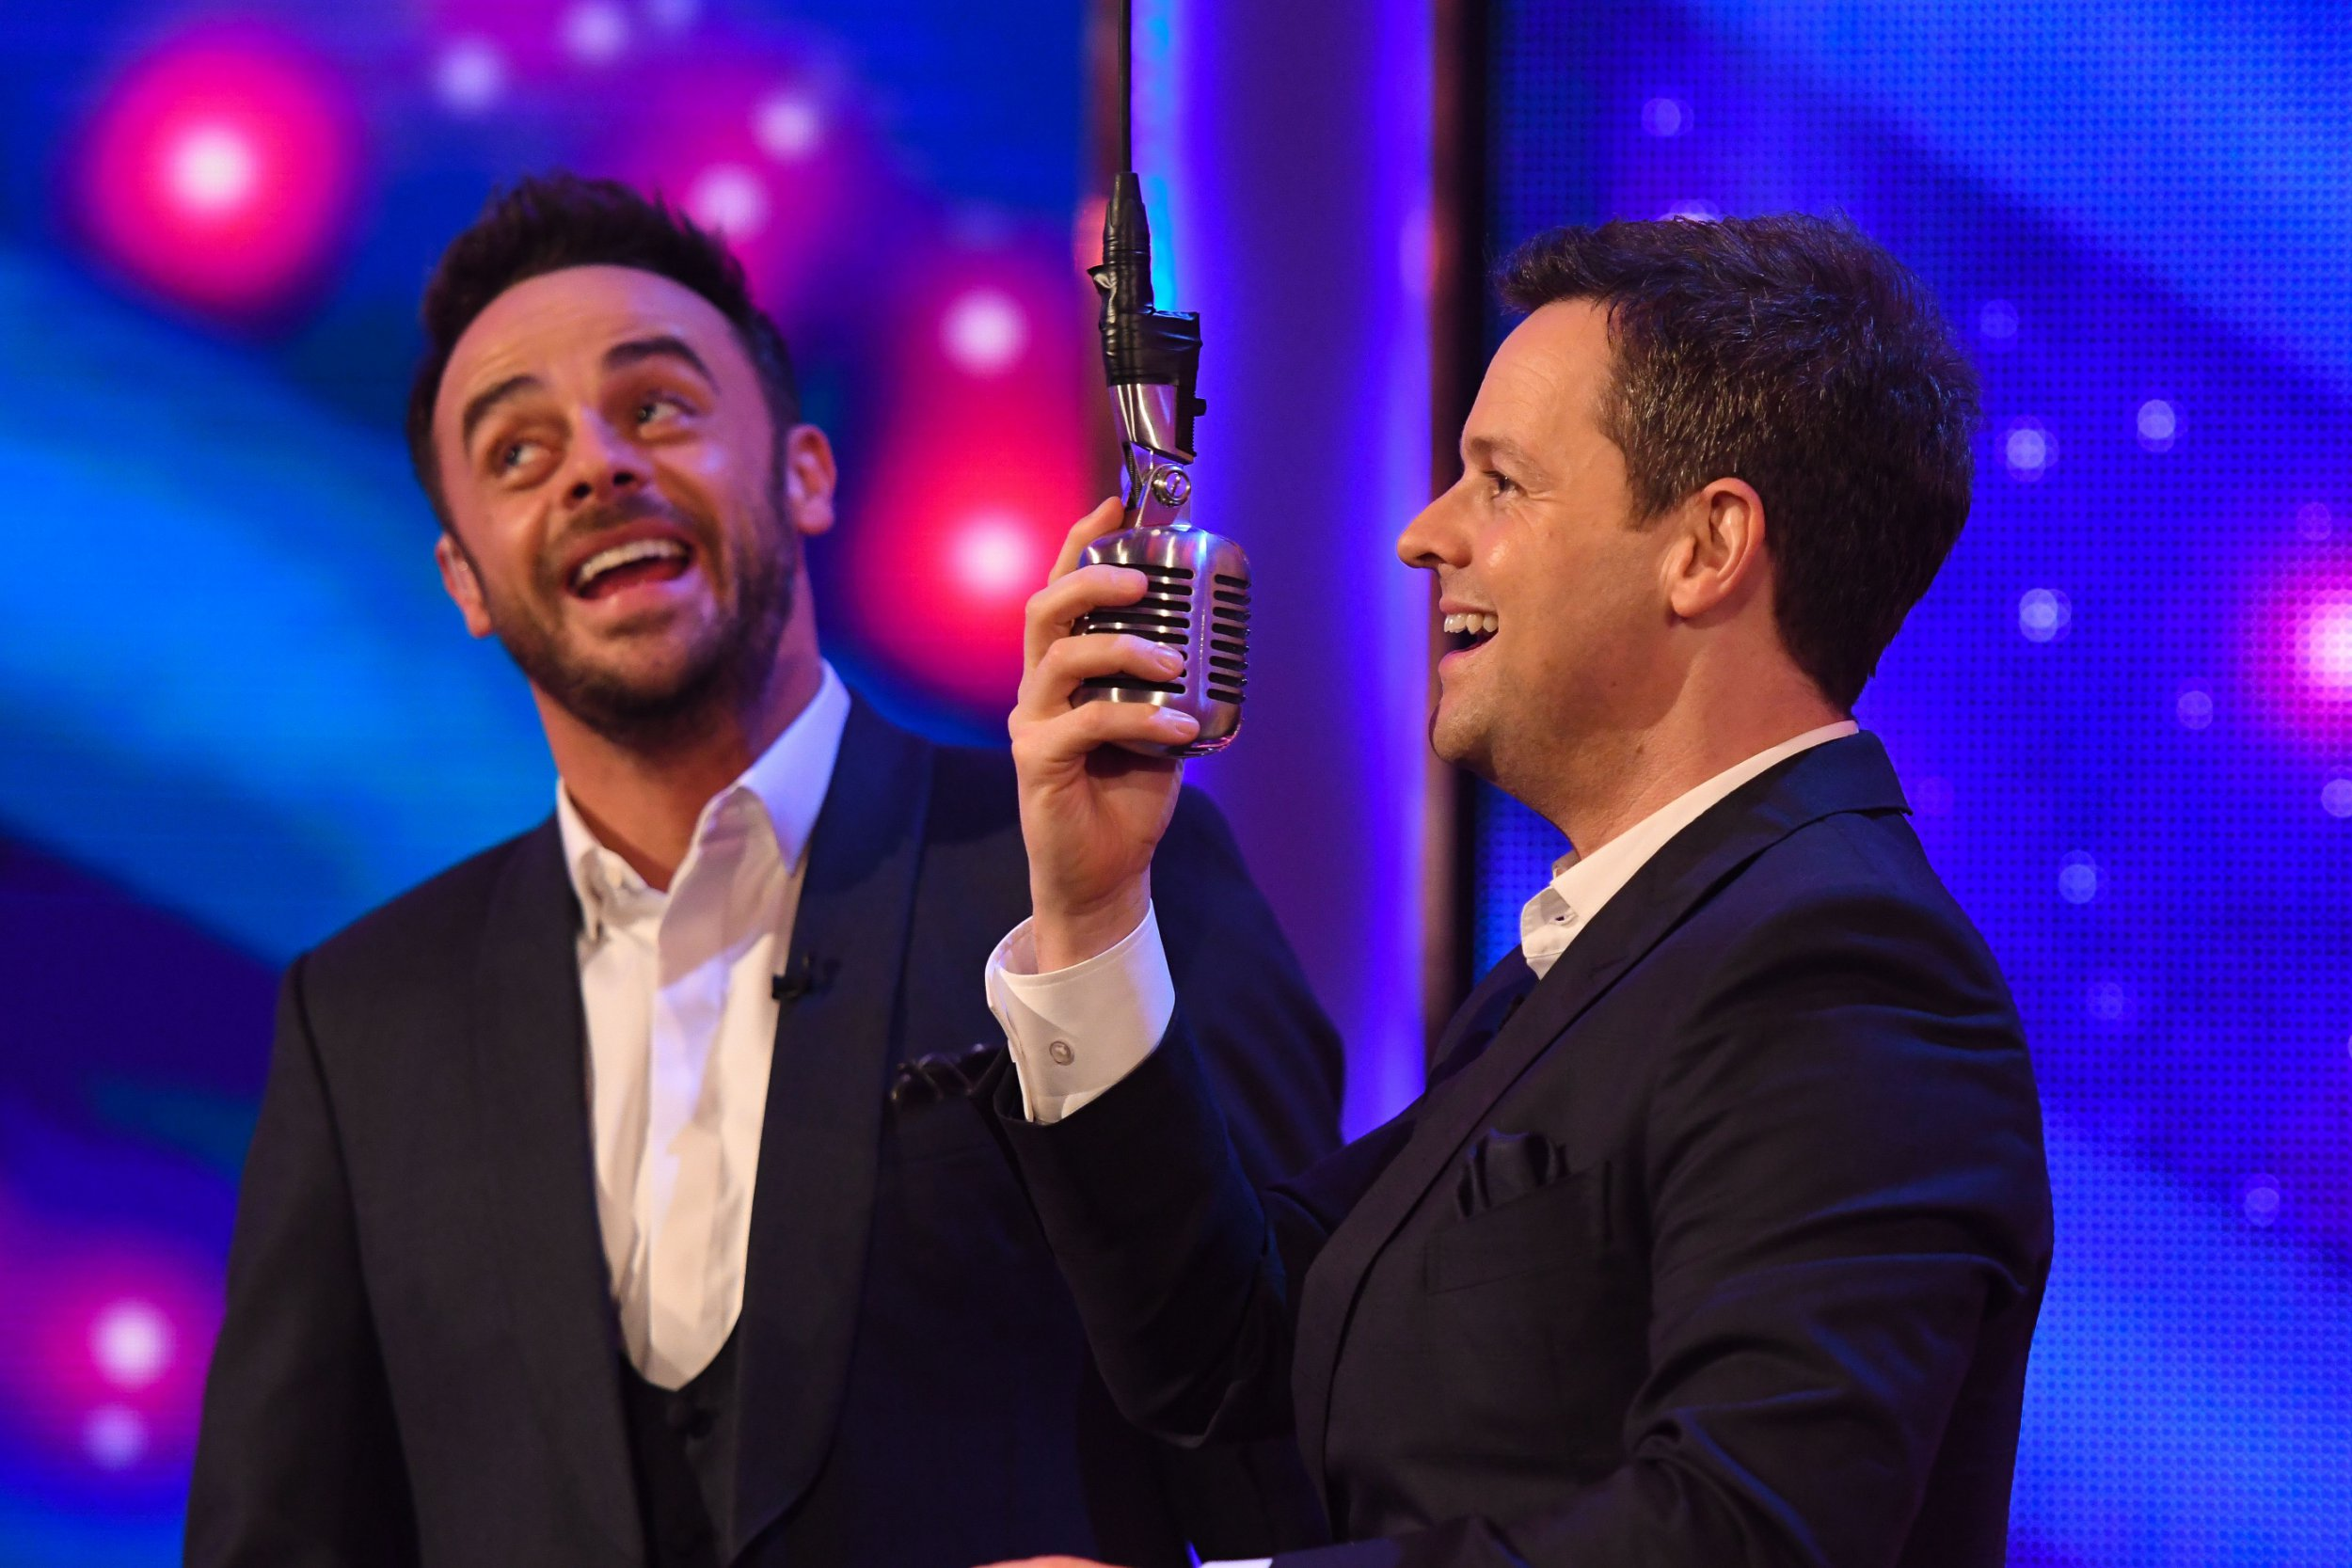 Editorial Use Only. No merchandising Mandatory Credit: Photo by ITV/REX/Shutterstock (9454096bd) Anthony McPartlin and Declan Donnelly 'Ant & Dec's Saturday Night Takeaway' TV Show, Series 15, Episode 3, London, UK - 10 Mar 2018